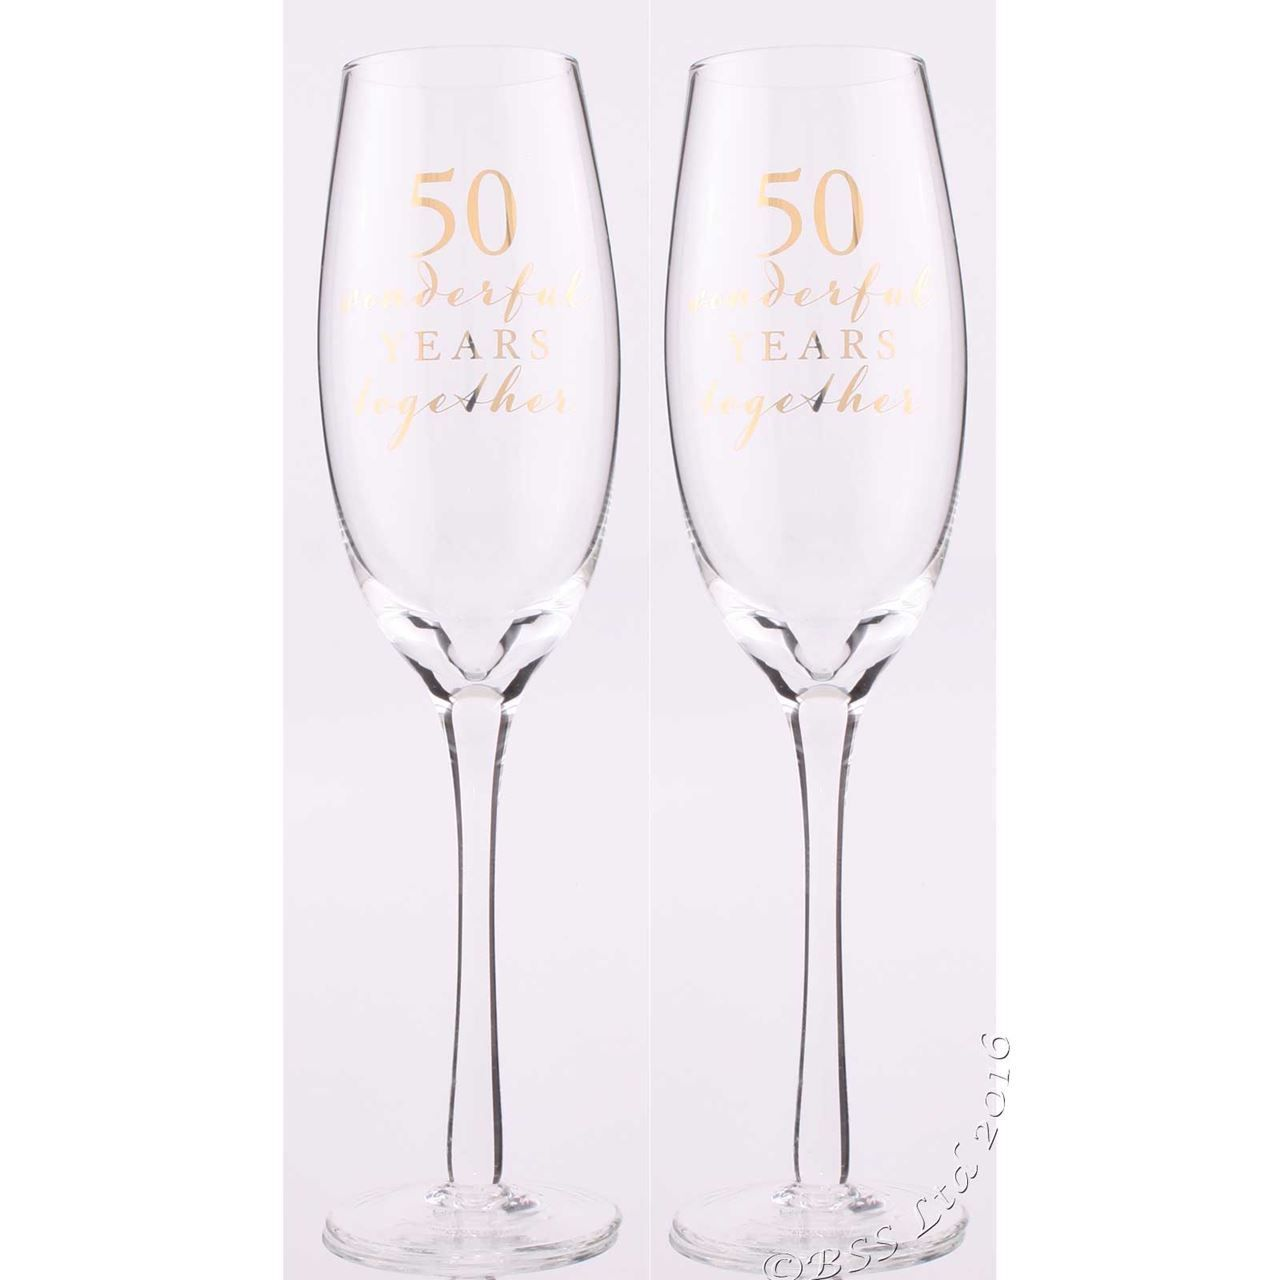 50th Anniversary Champagne Flutes | Champagne flutes, Flutes and ...